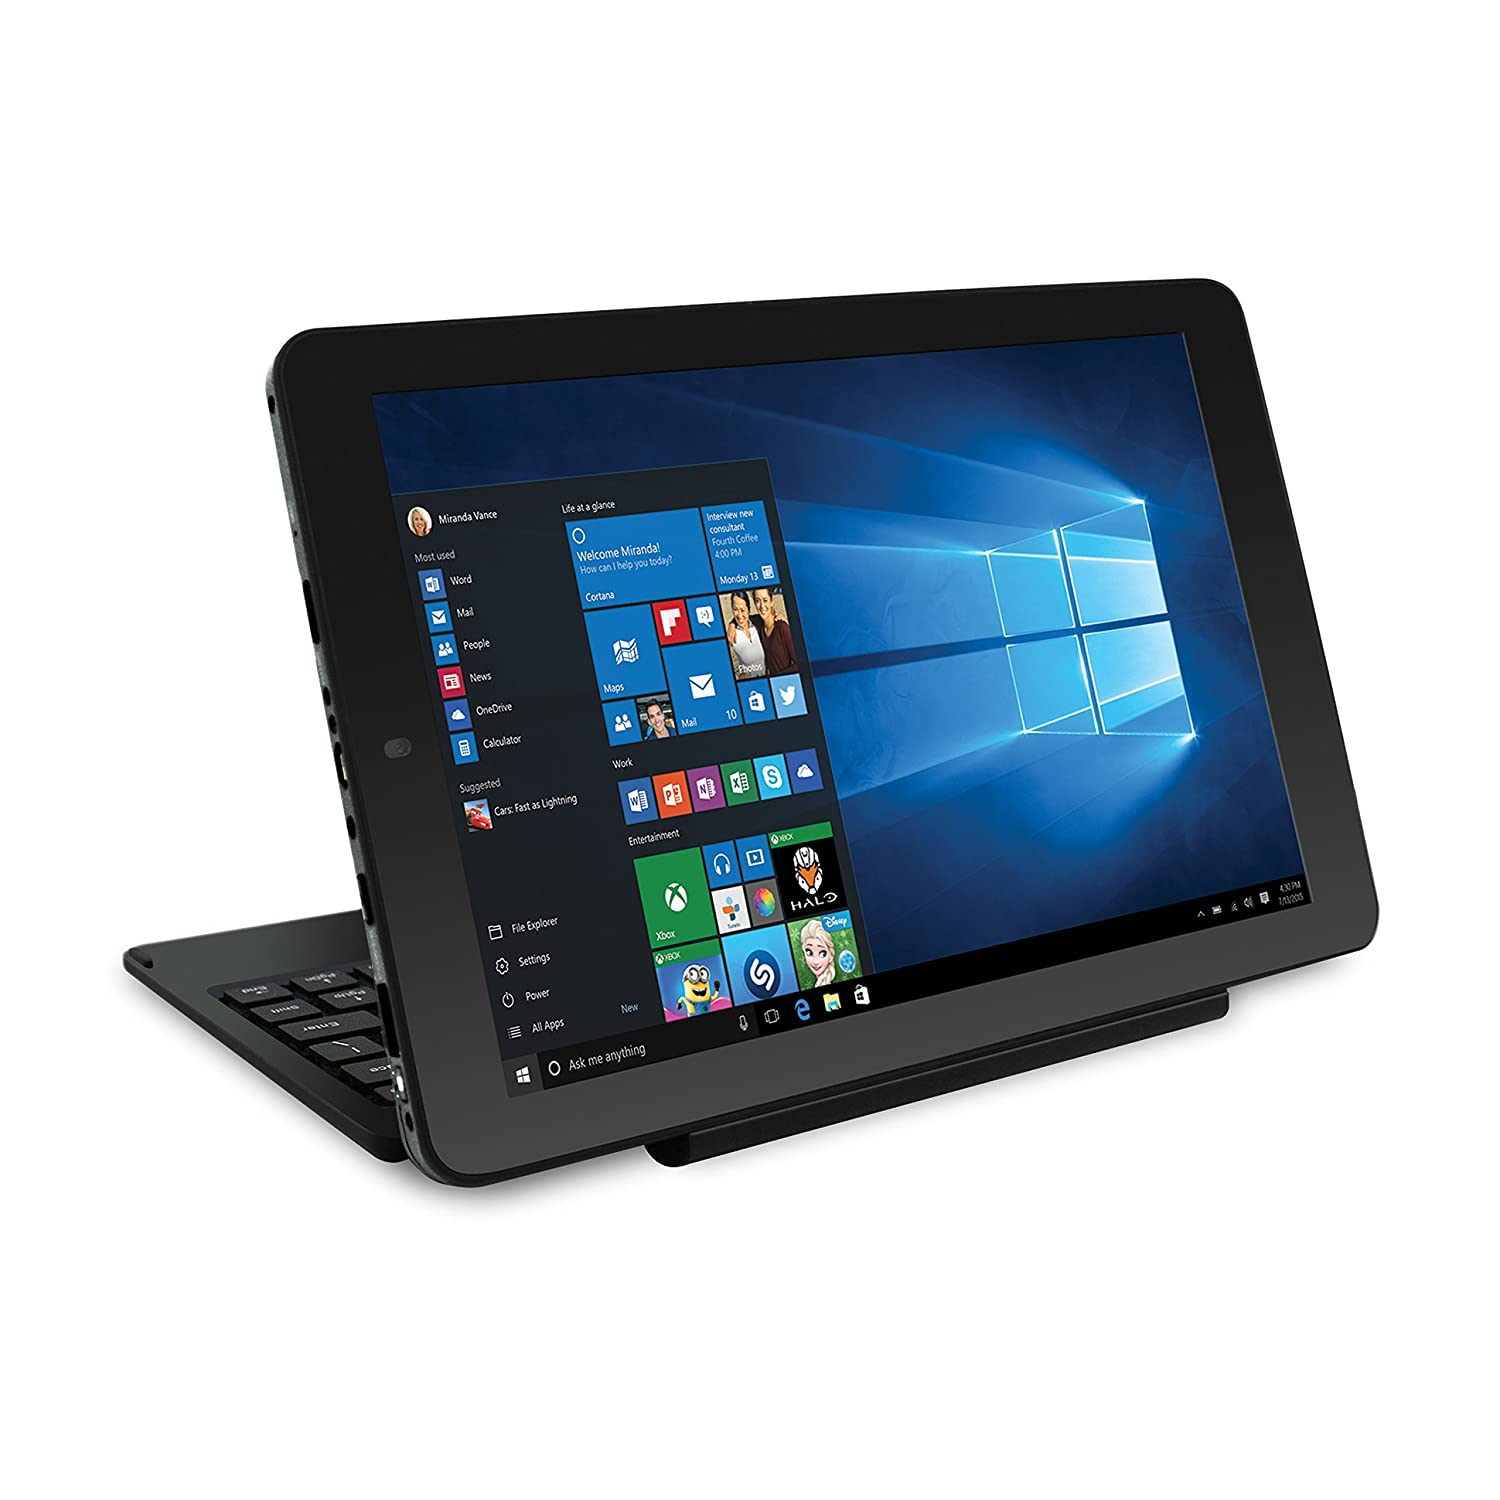 Amazon.com : RCA Cambio 10.1 2-in-1 Tablet 32GB Intel Quad Core Windows 10 Black Touchscreen Laptop Computer with Bluetooth and WIFI Computers \u0026